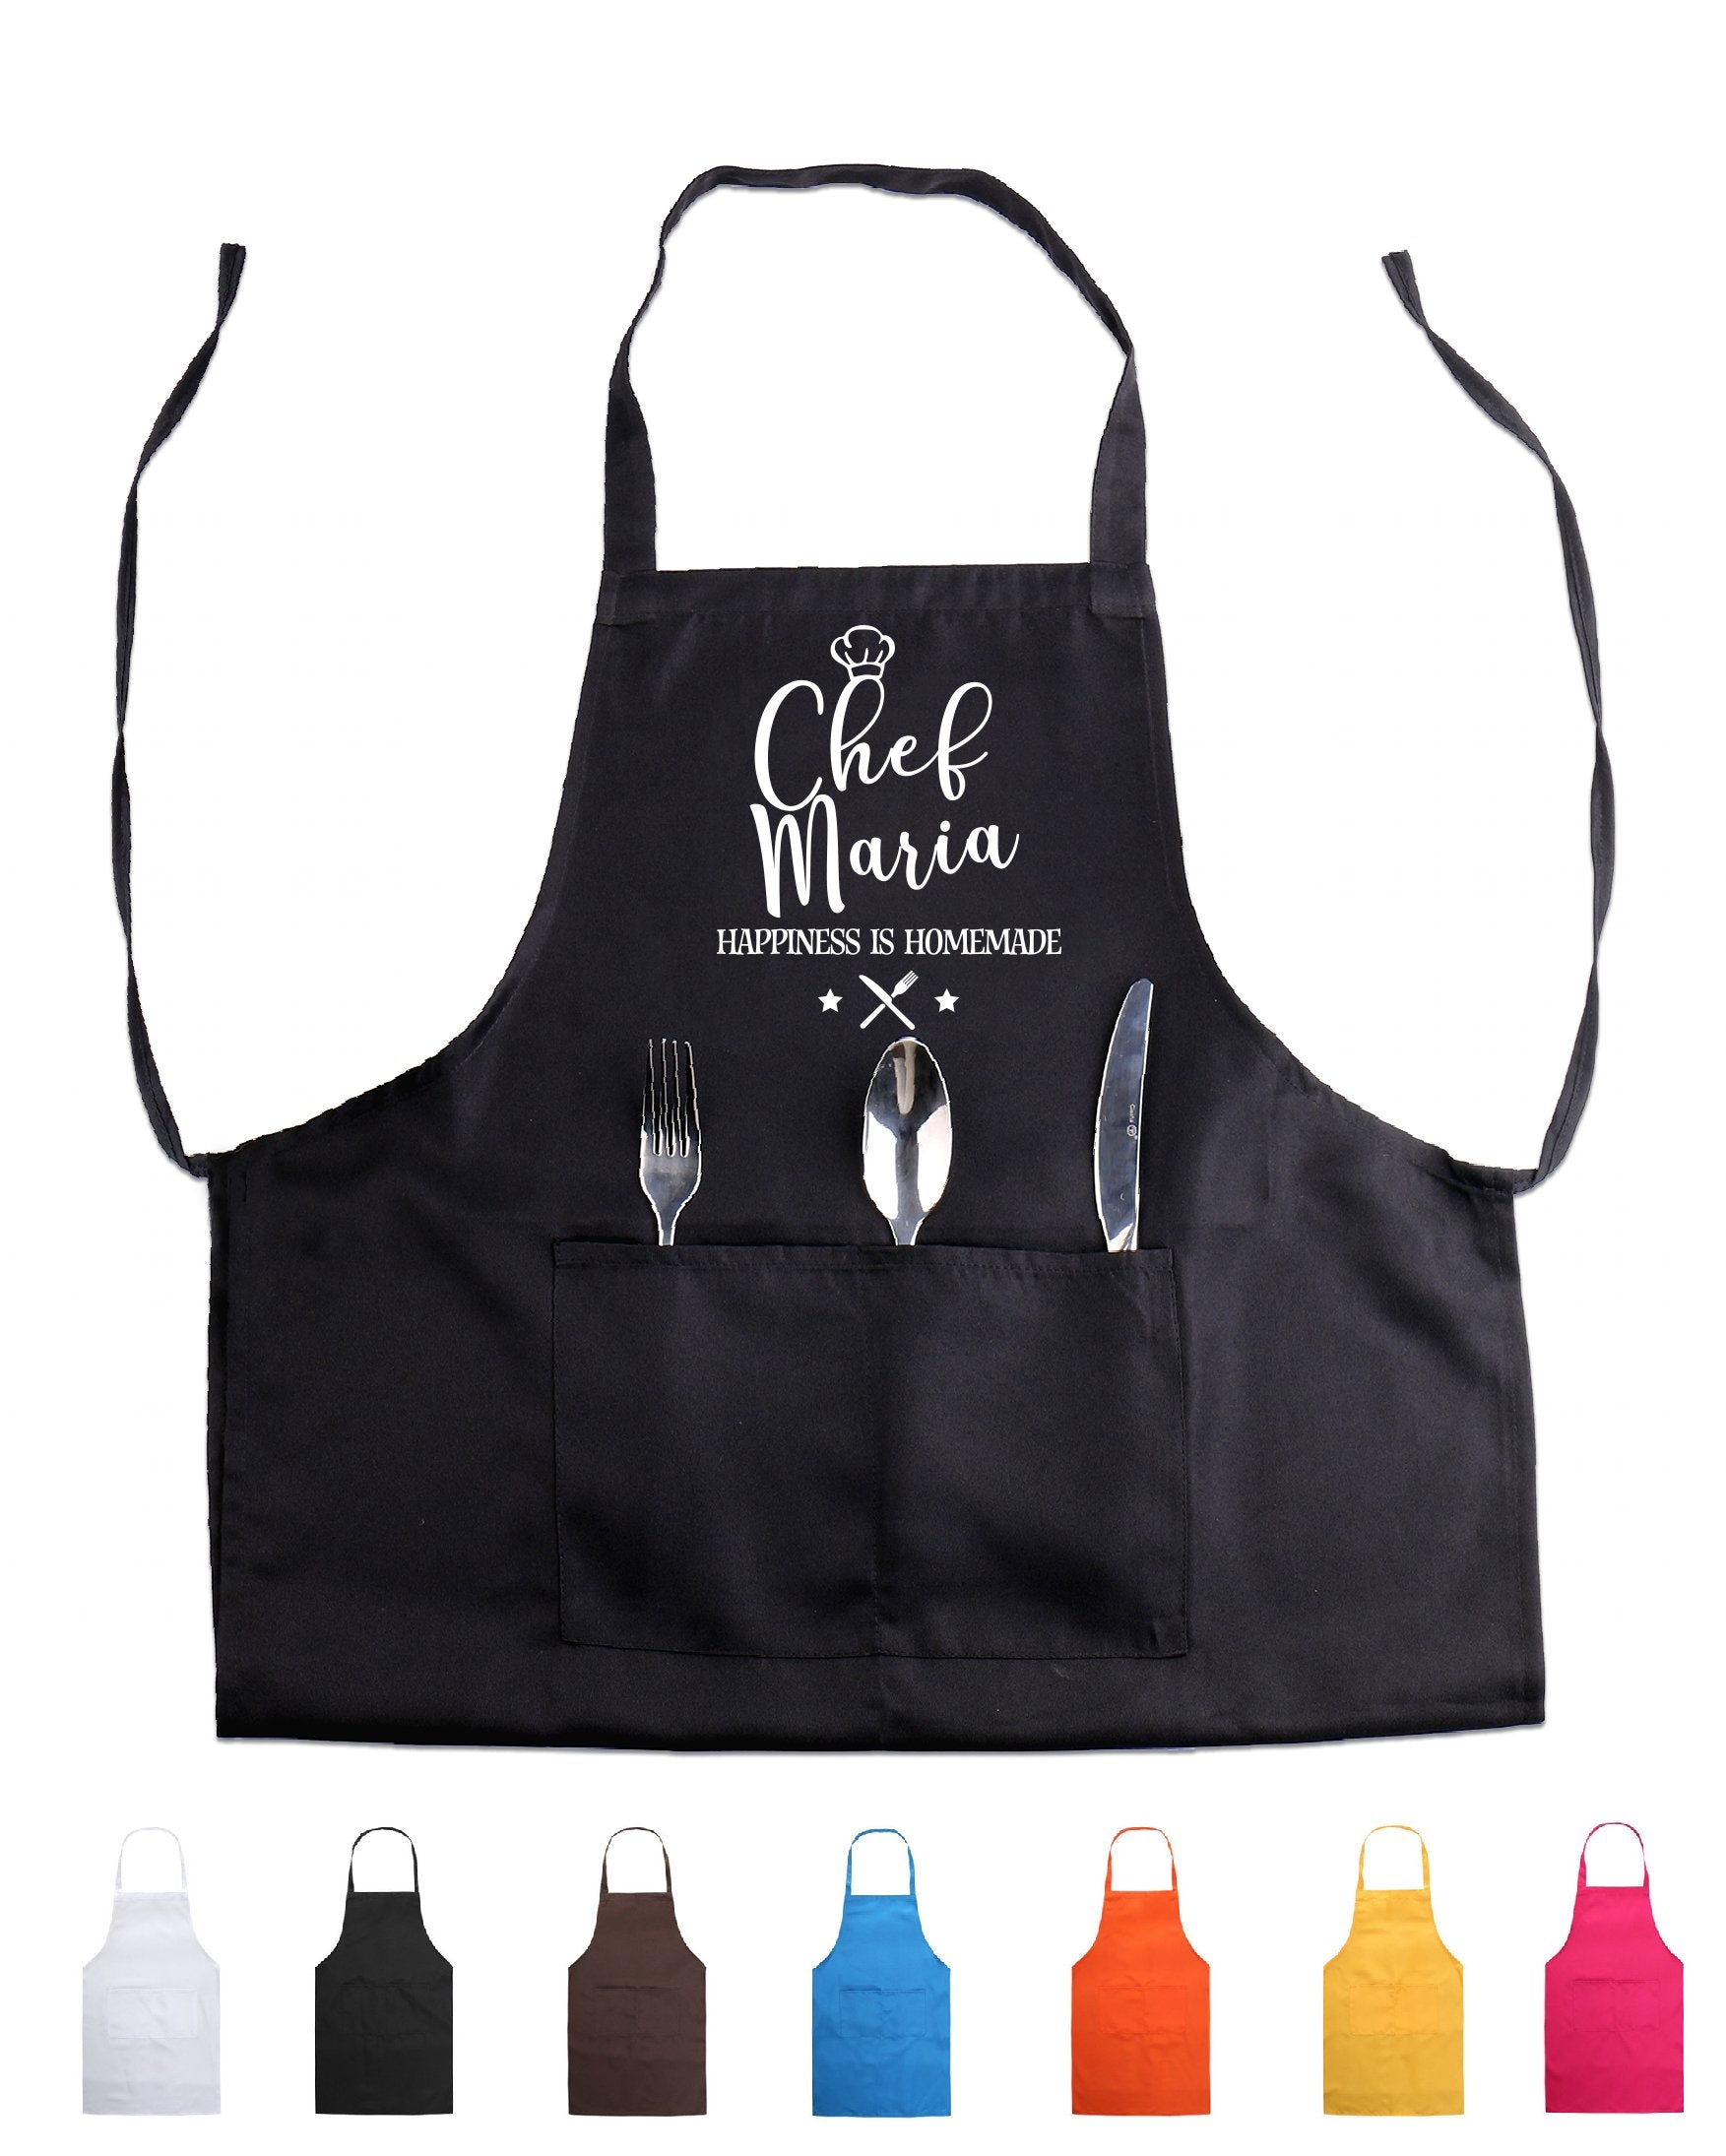 Personalized Apron with Pocket Mother Grandmother Your Name Custom Text Cooking Bakery Chef Wedding Gift Housewarming Wife Gift